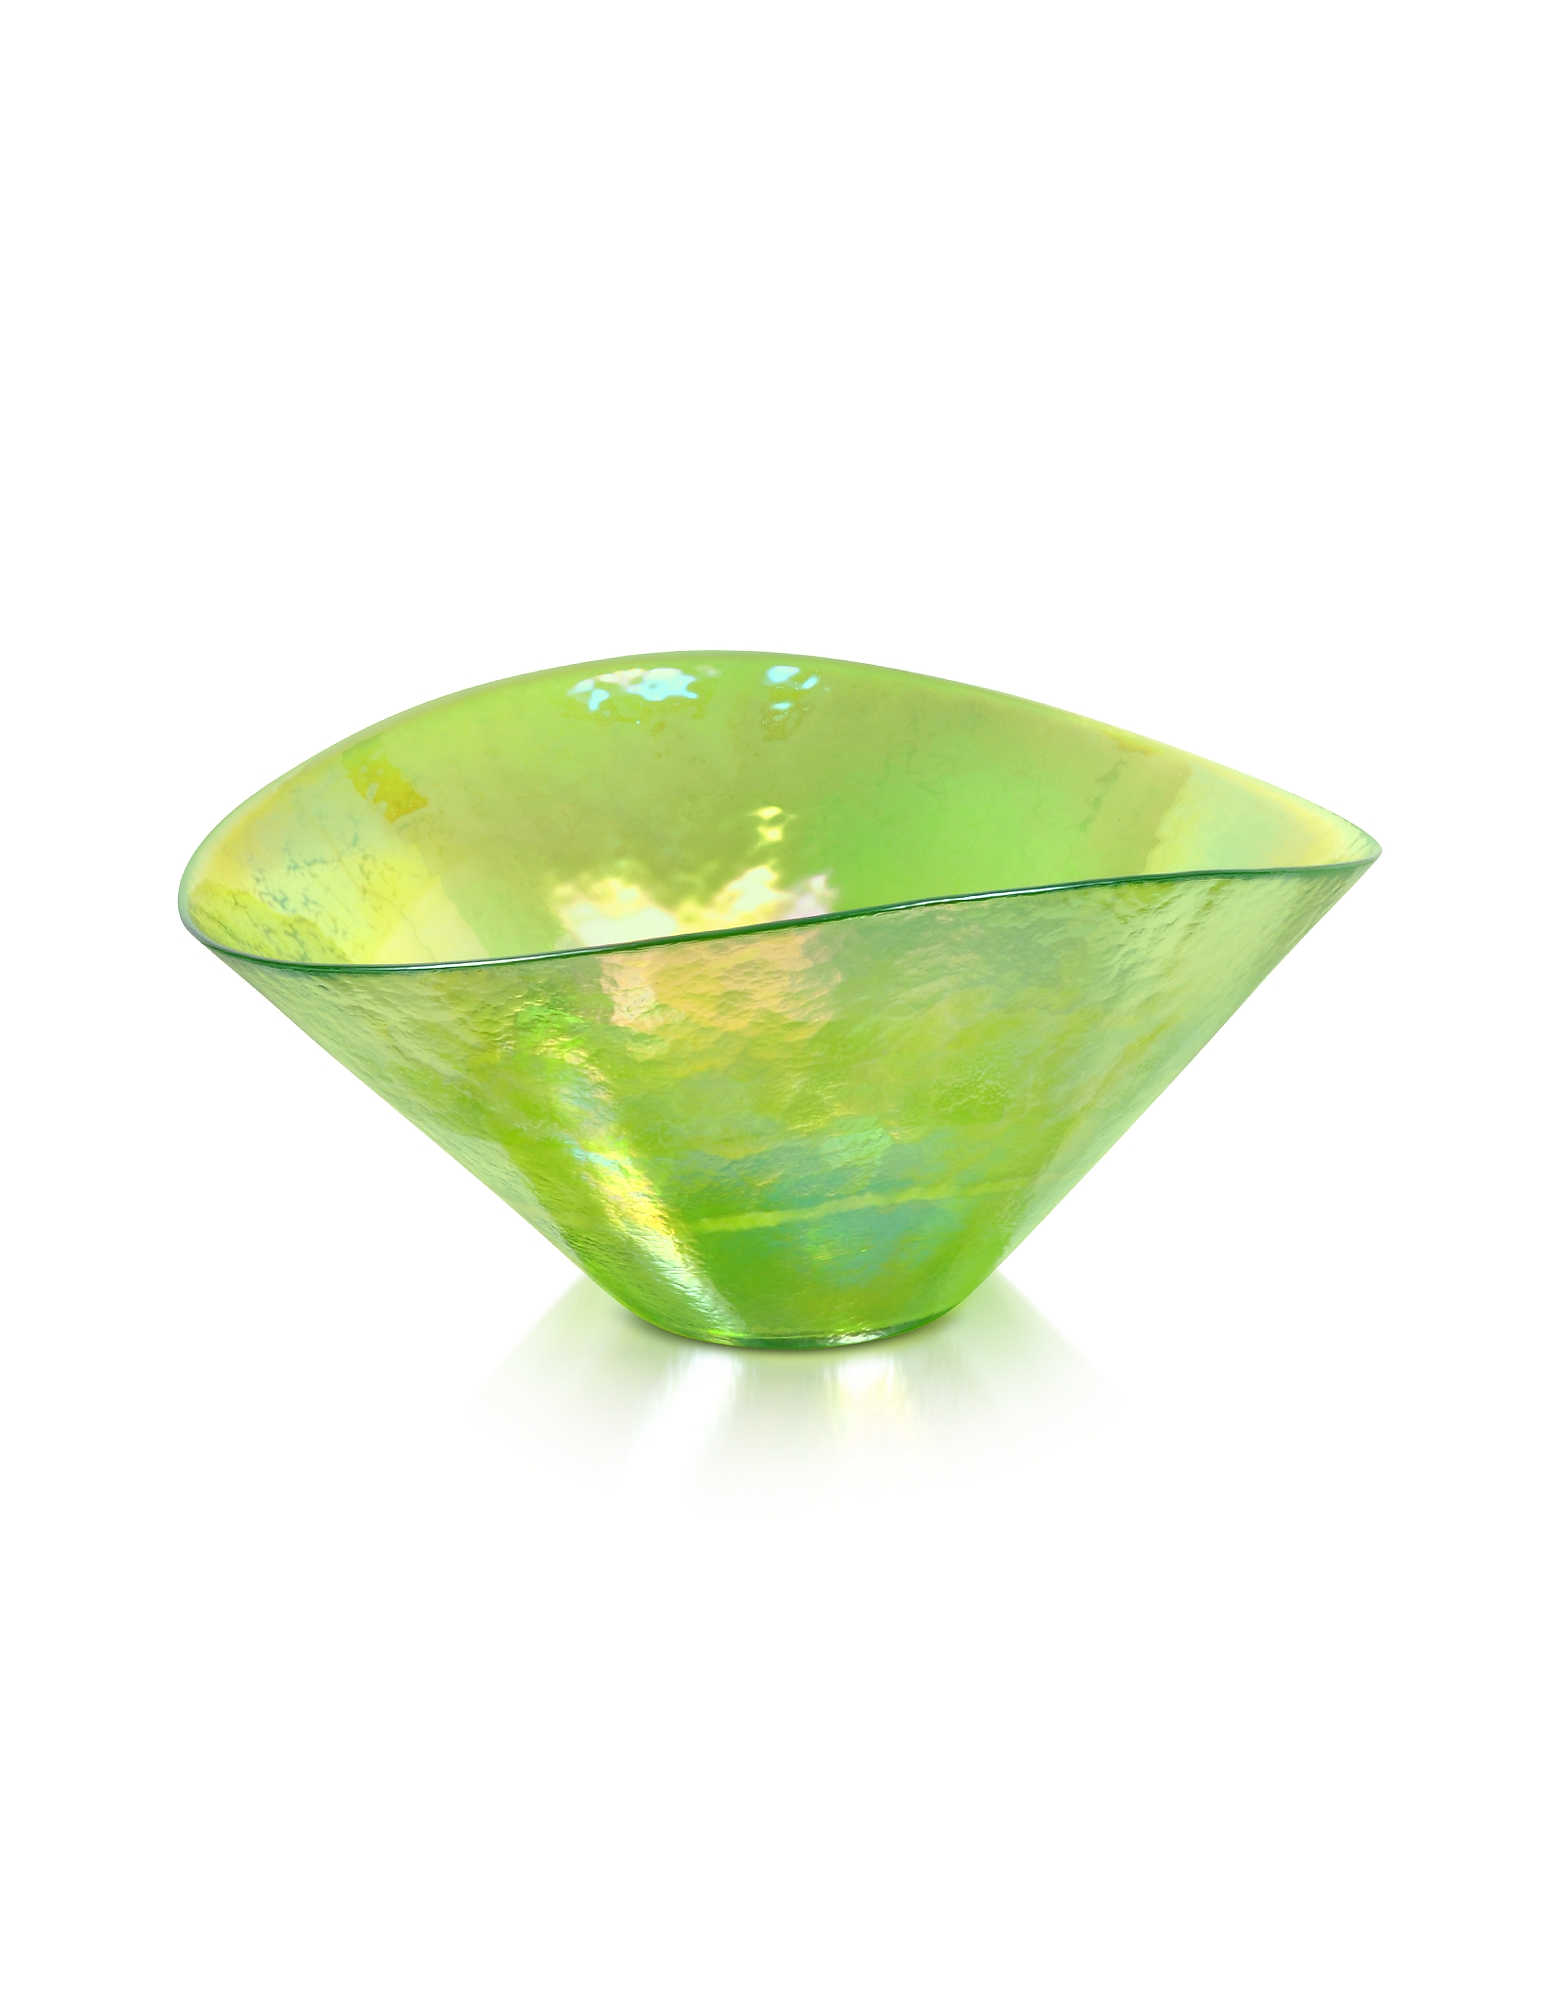 Yalos Murano Designer Decor  Lighting Tango  Green Swirl Murano Glass Bowl